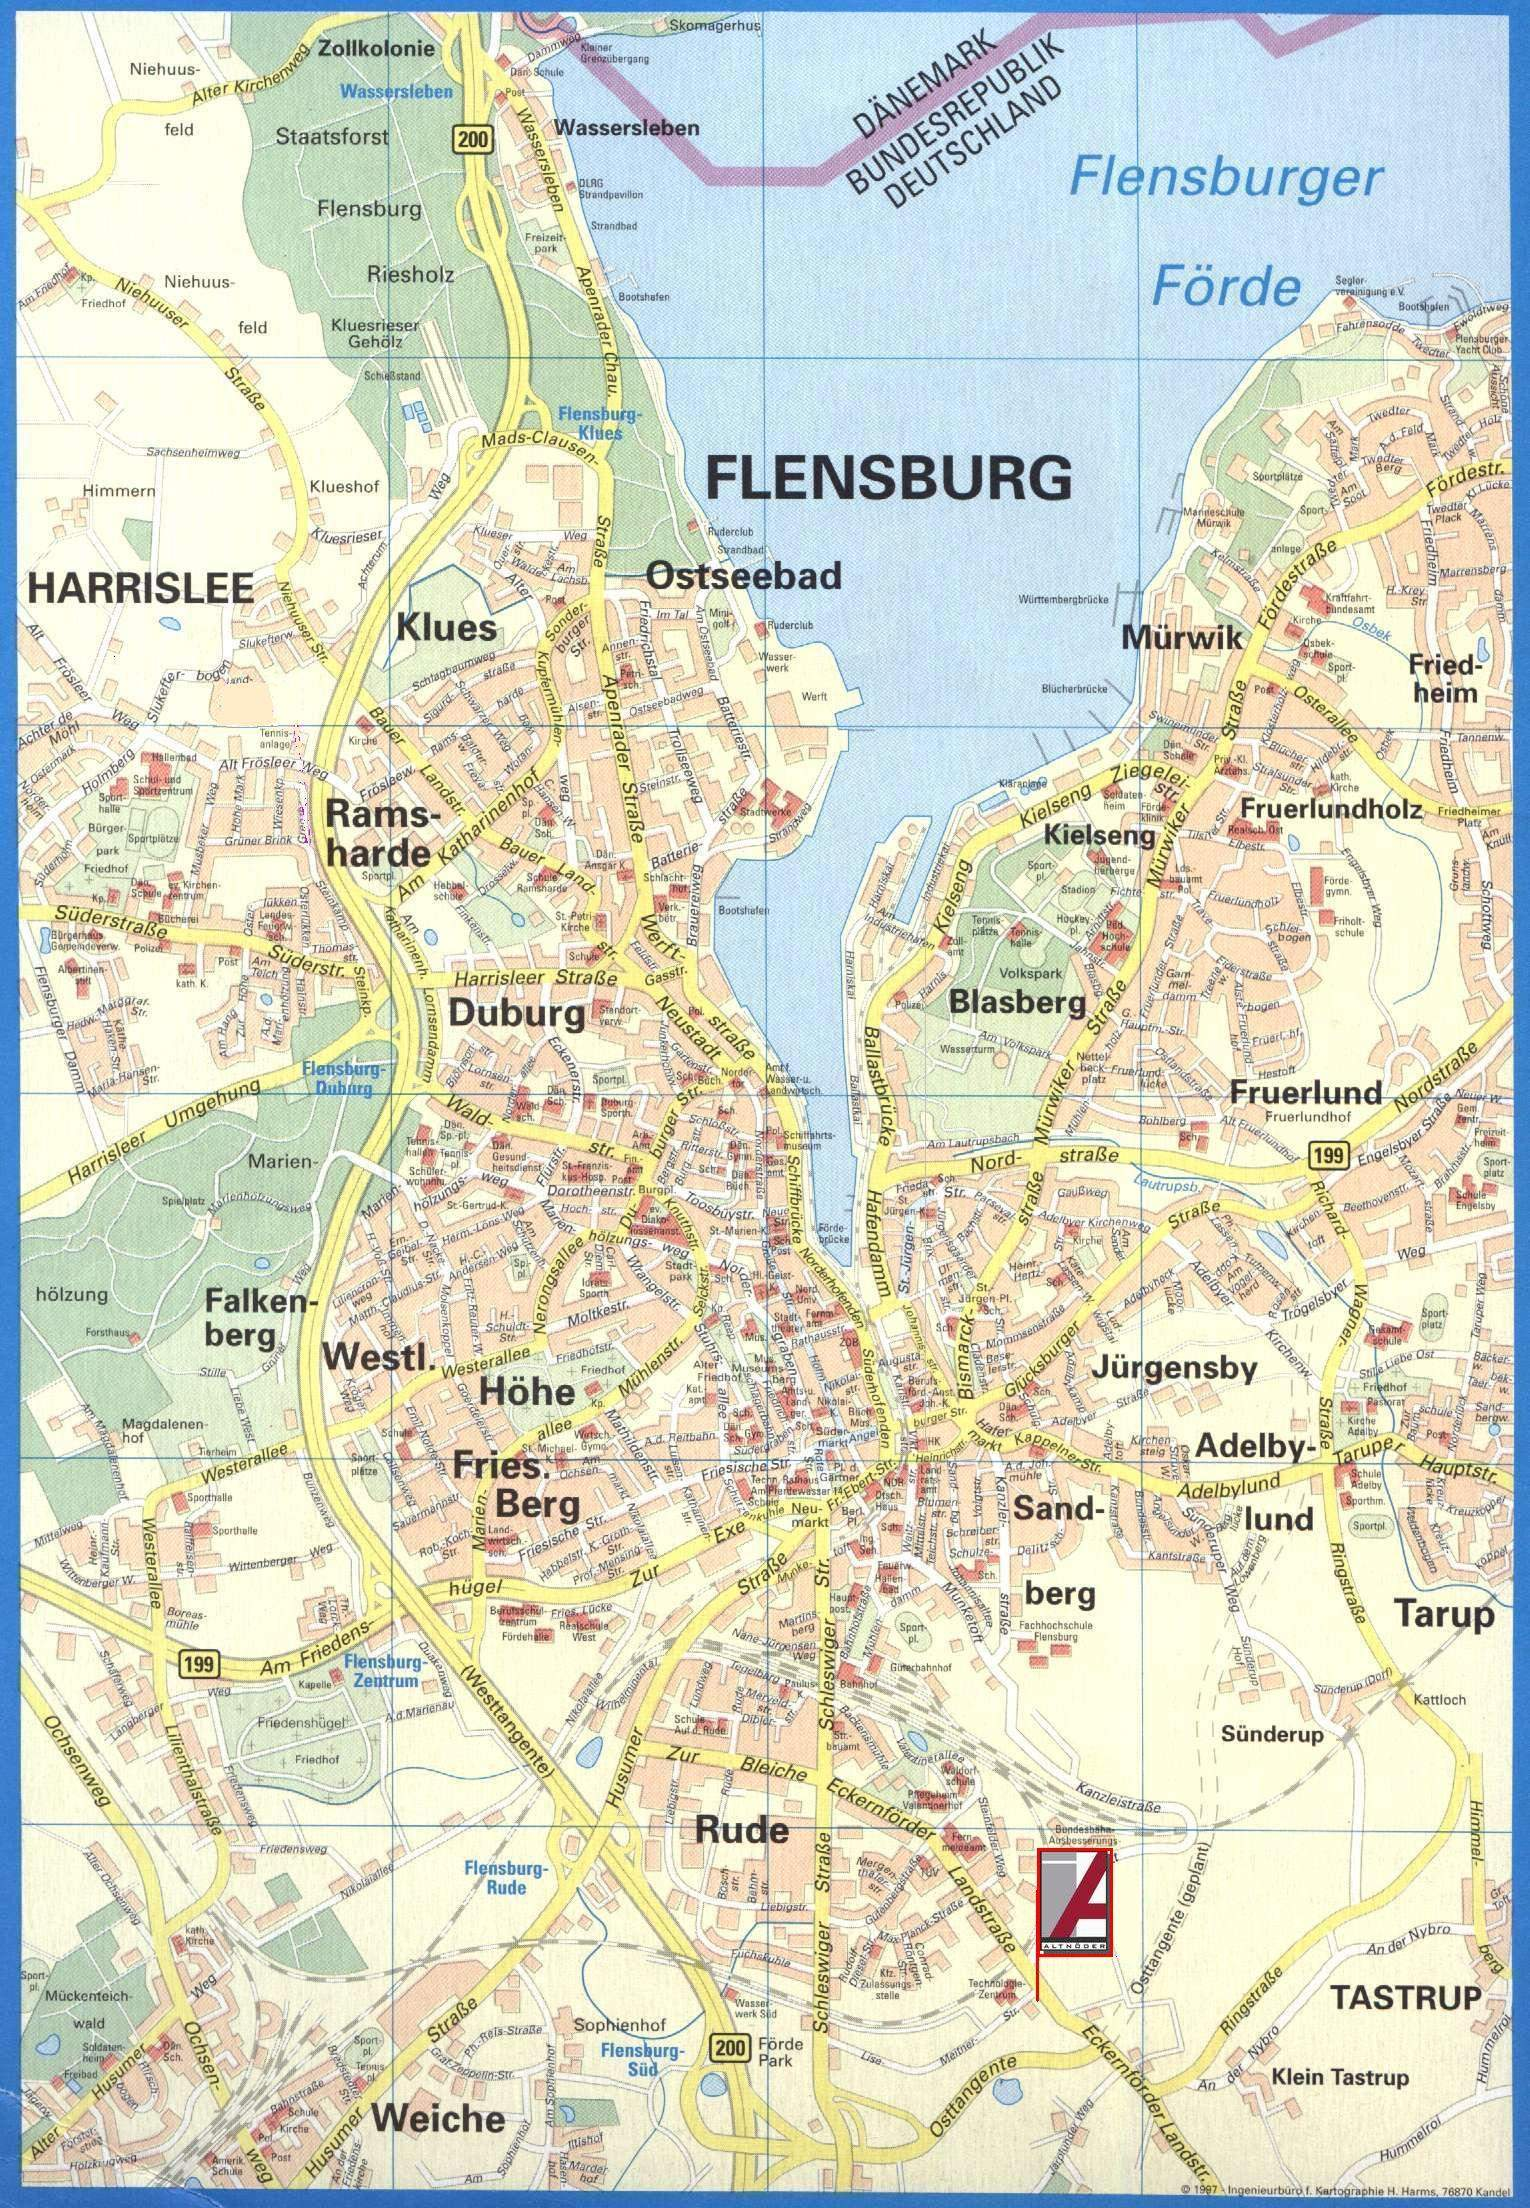 Large Flensburg Maps For Free Download And Print HighResolution - Germany map download